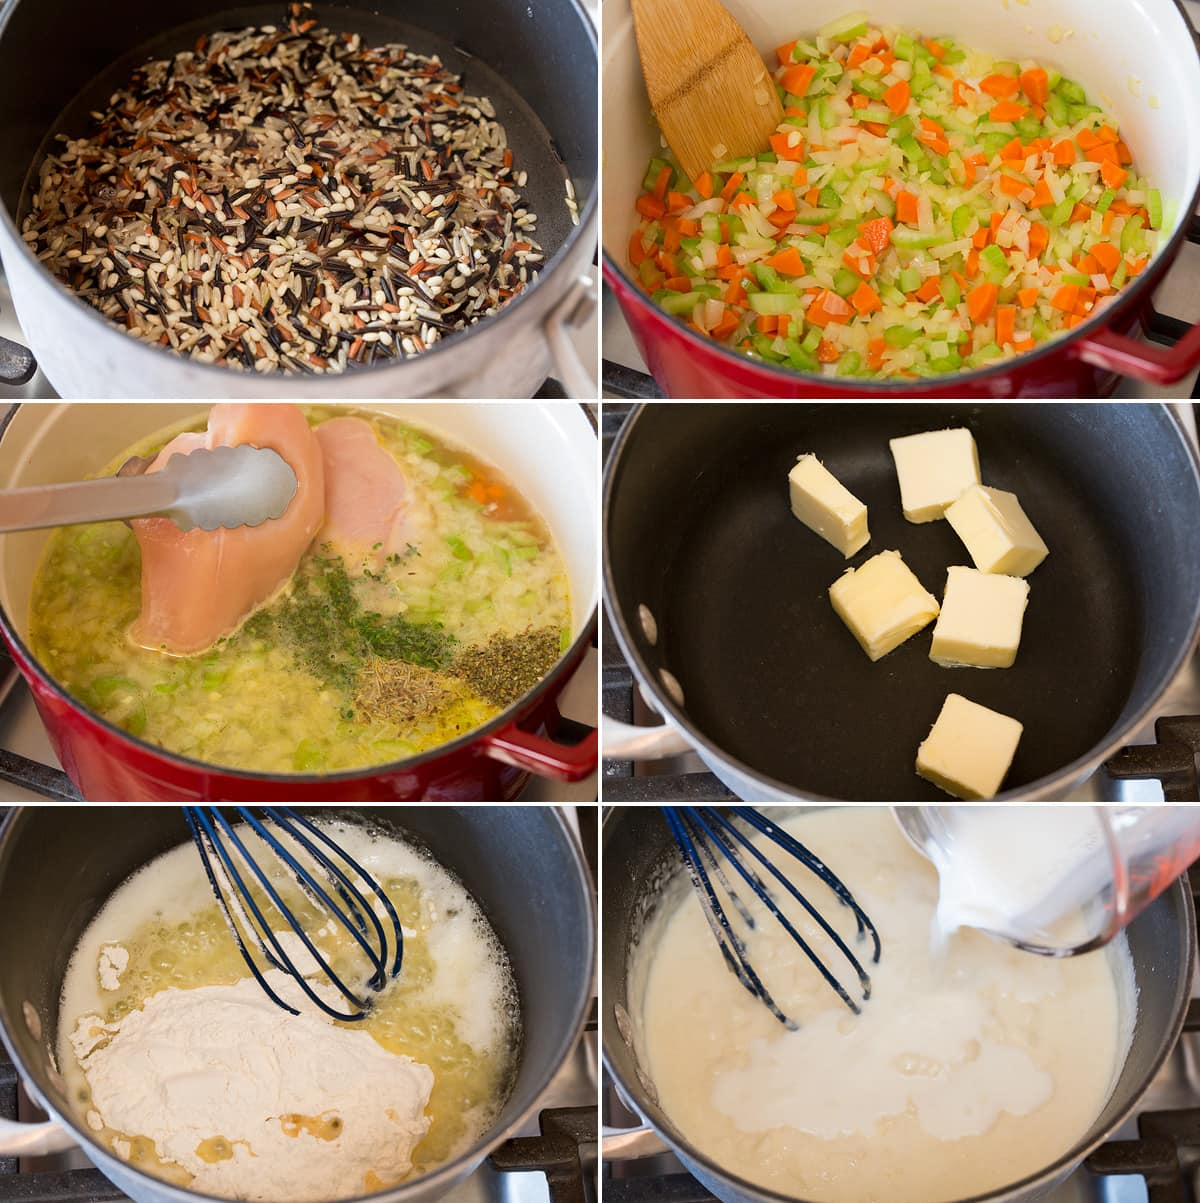 Collage of six pictures showing steps to prepare chicken and wild rice soup. Shows how to cook wild rice separately, how to cook chicken broth and herbs, and how to prepare bechemel sauce in one pot.